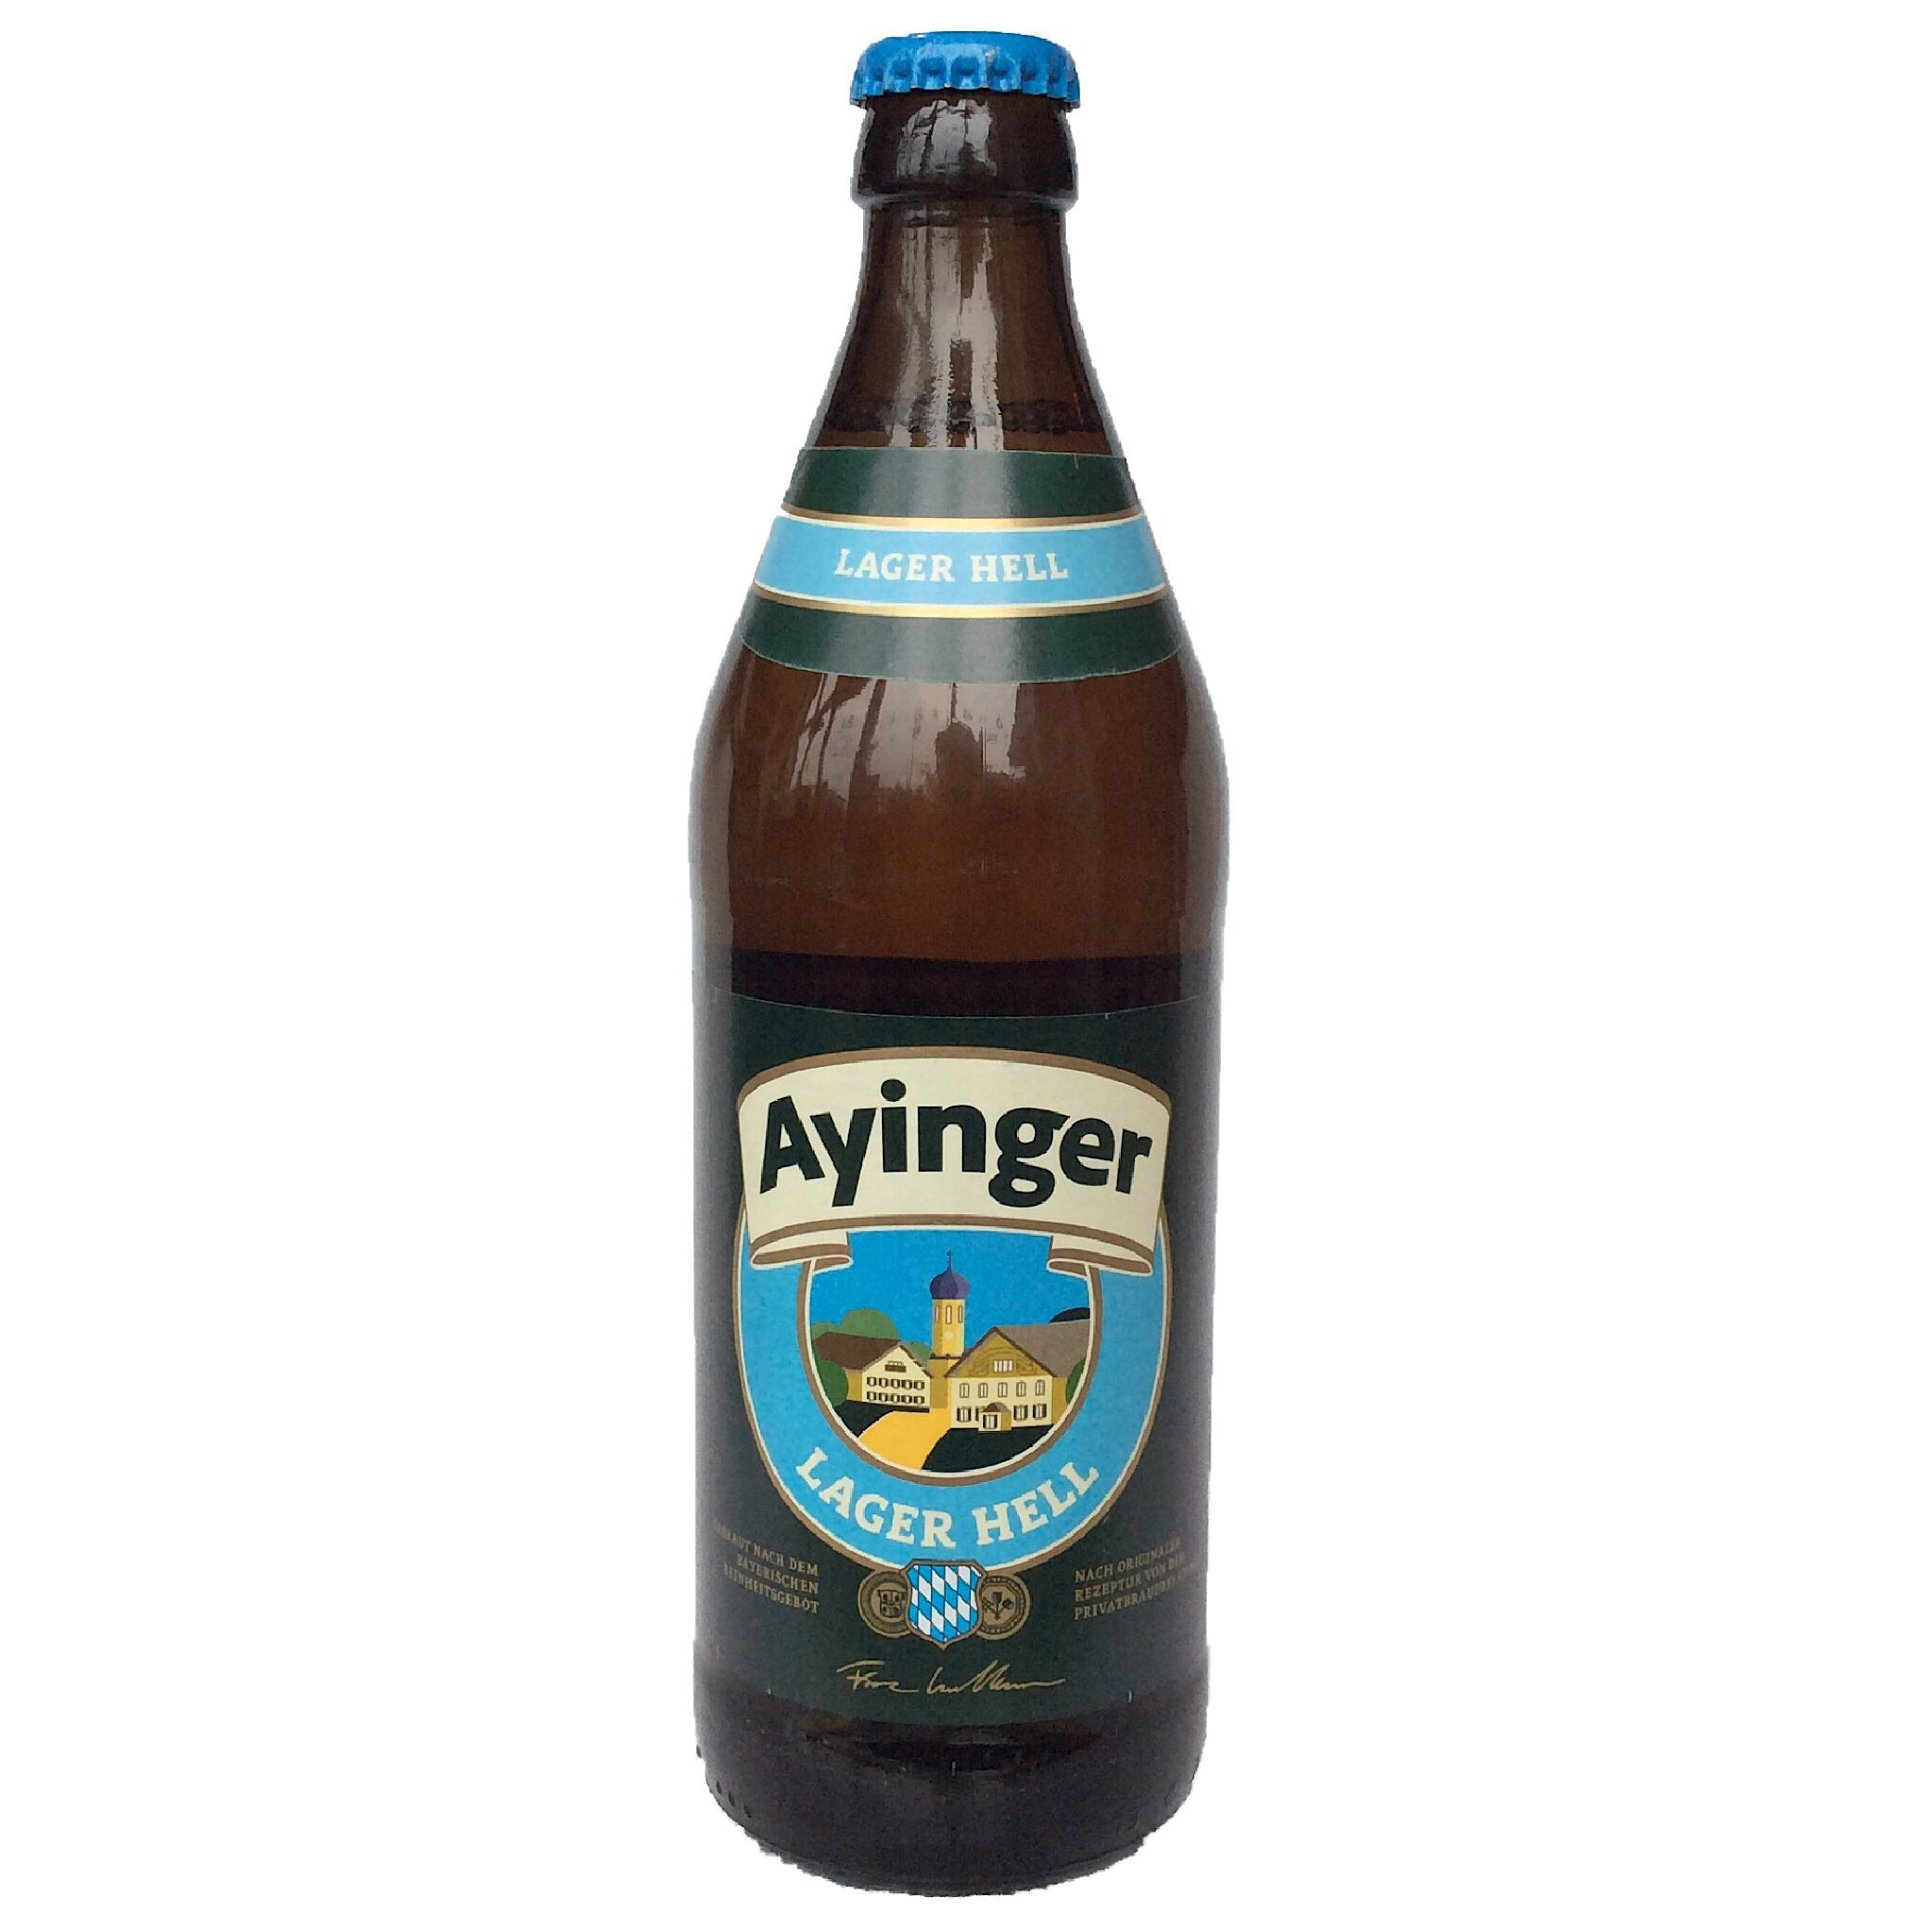 Ayinger Lager Hell 4.9% (500ml)-Hop Burns & Black